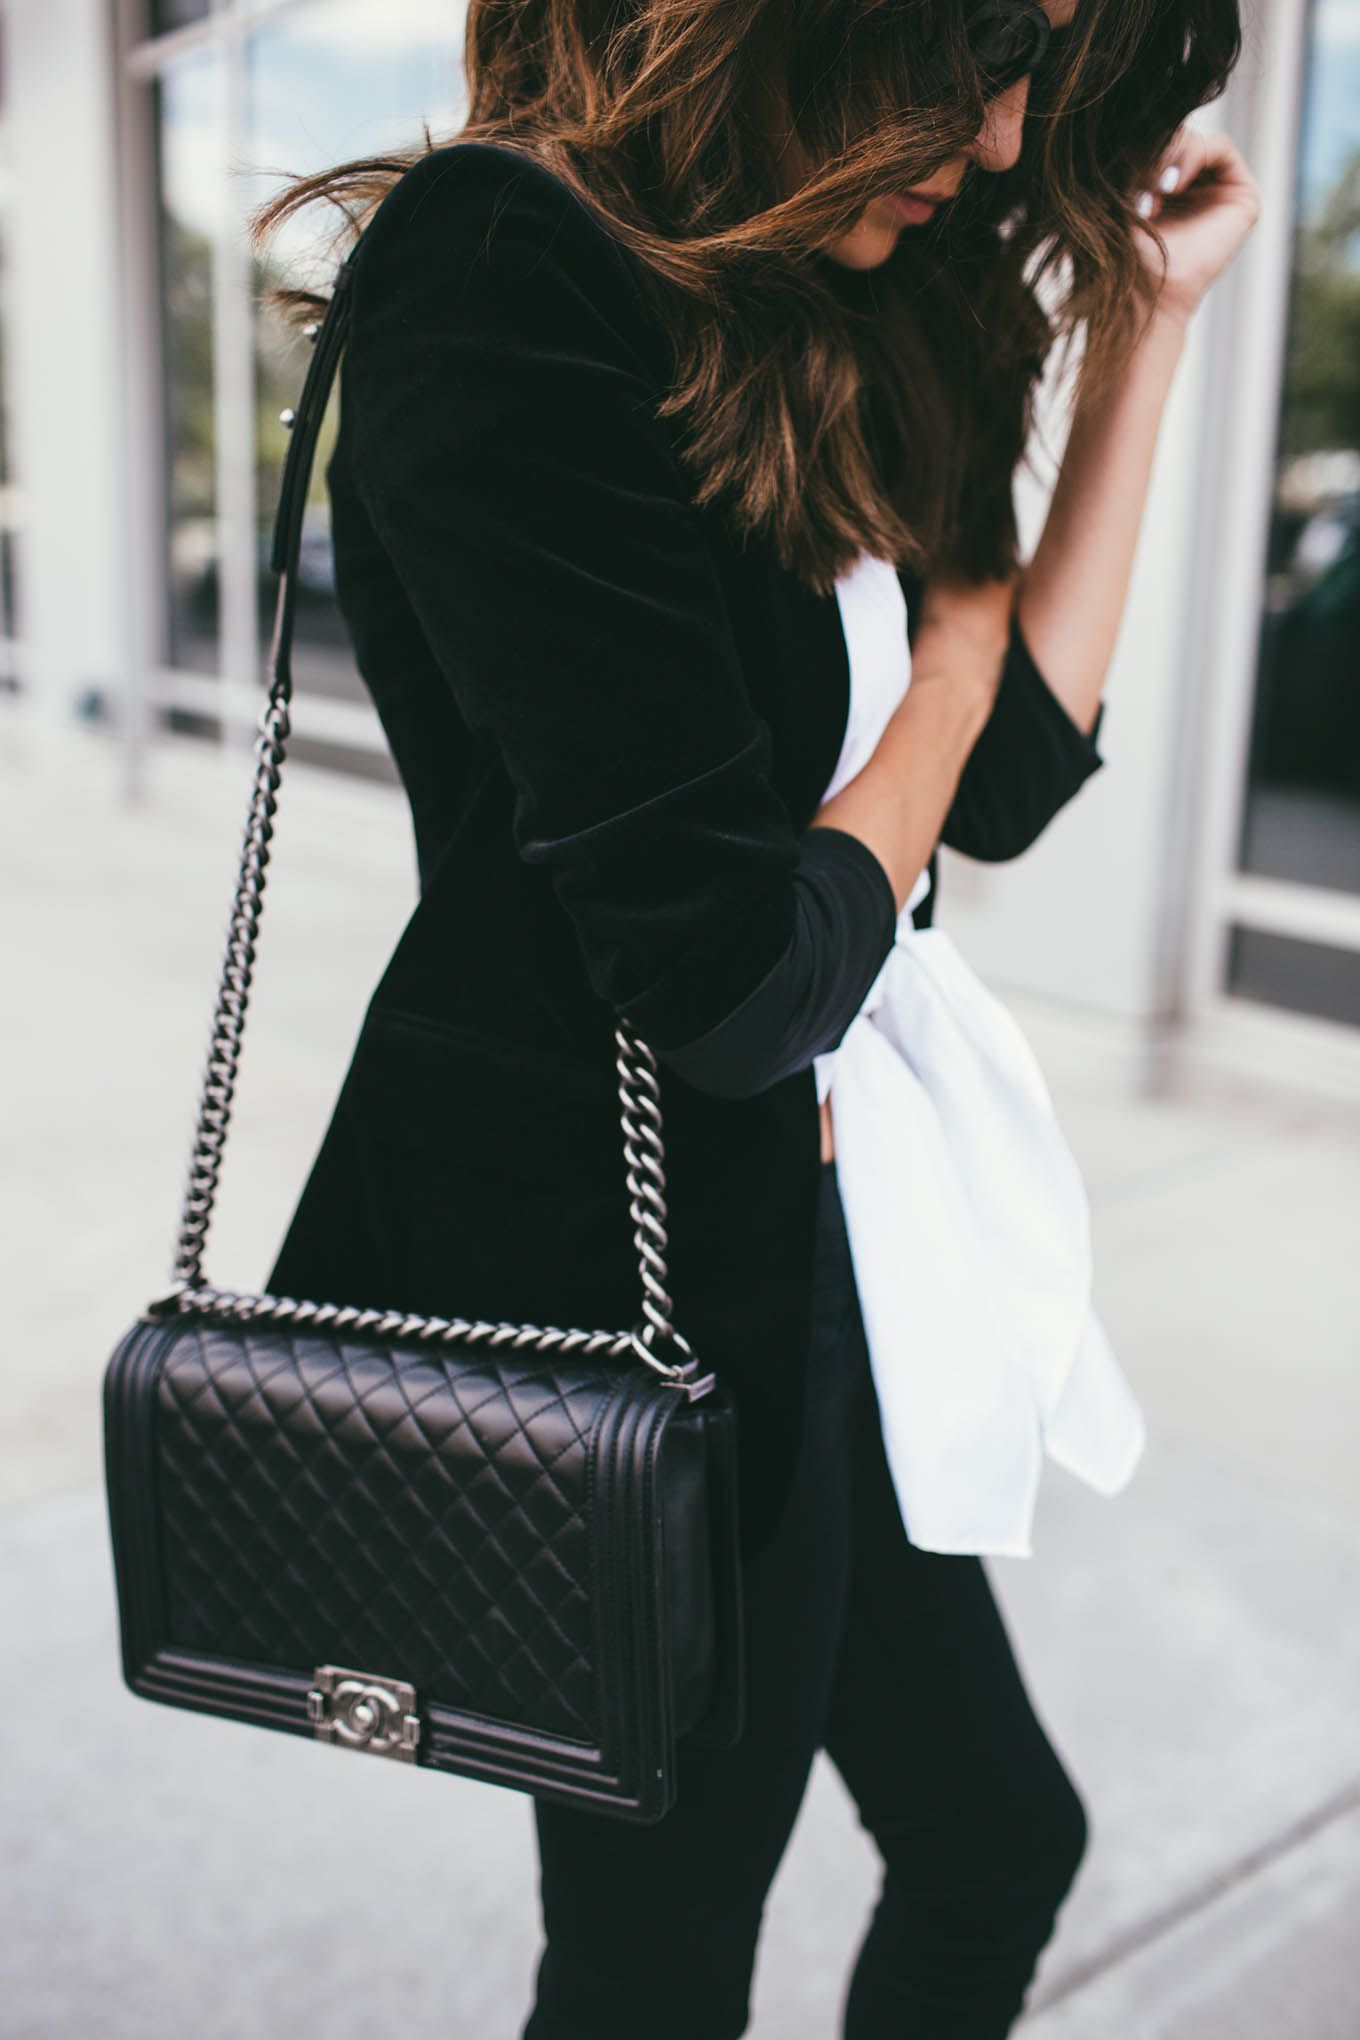 1000 images about chanel altid on pinterest chanel coco chanel and chanel boy bag